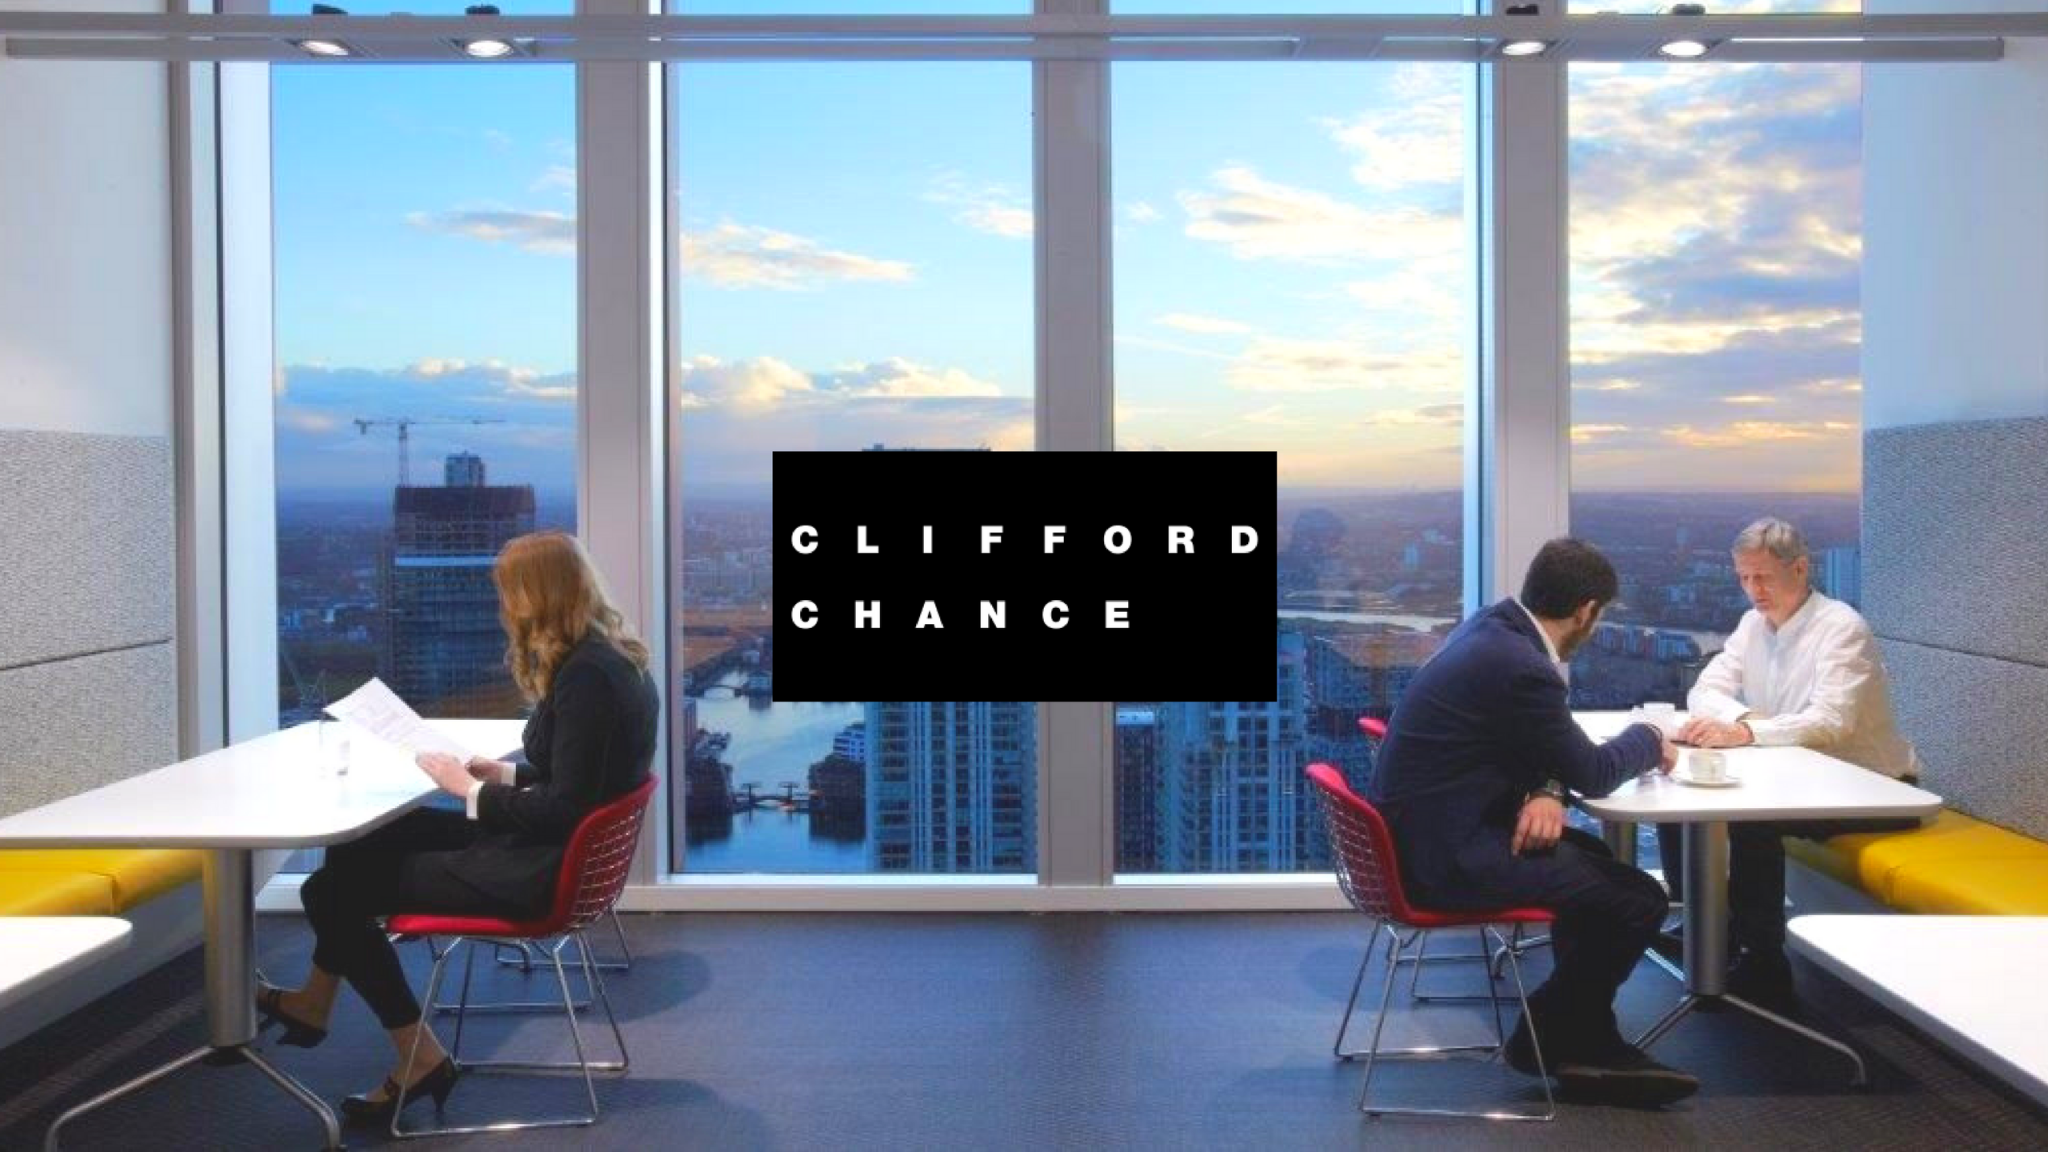 Clifford Chance Best Law Firms in the World UpSlide Top 50